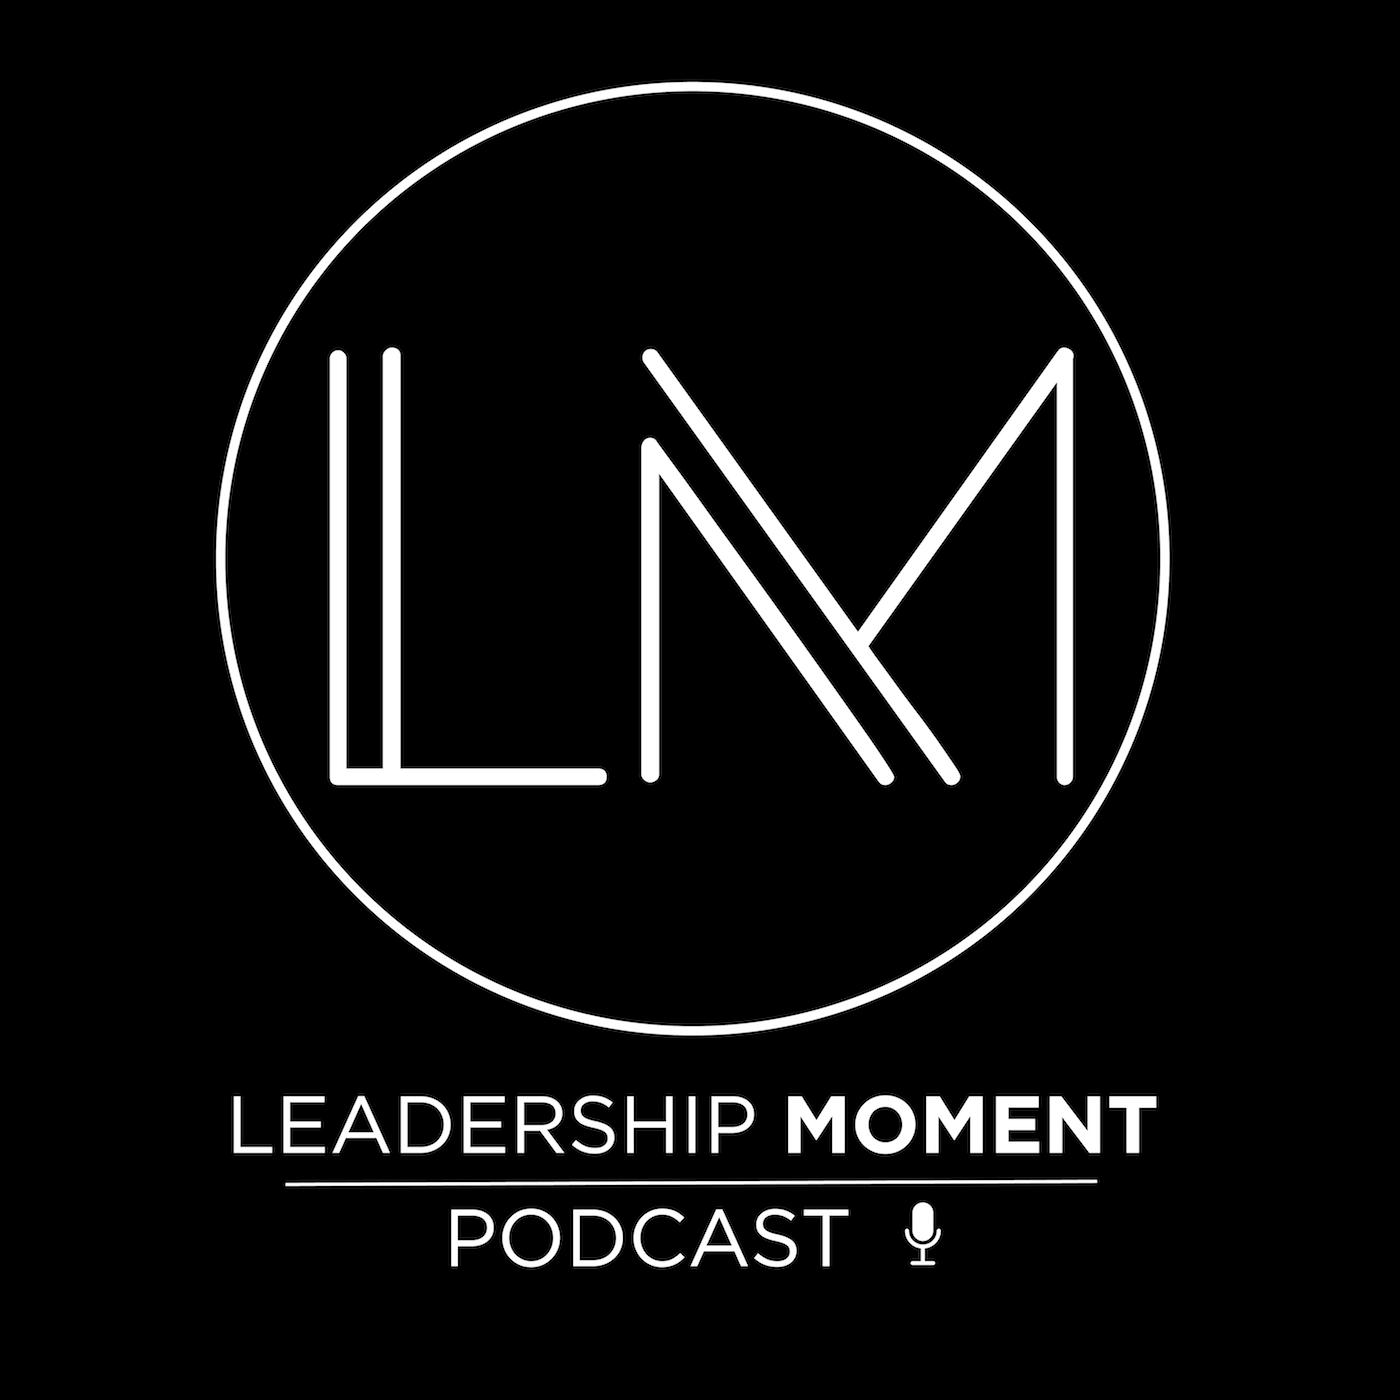 Leadership Development and Growth with Michael Pollard - LM0211